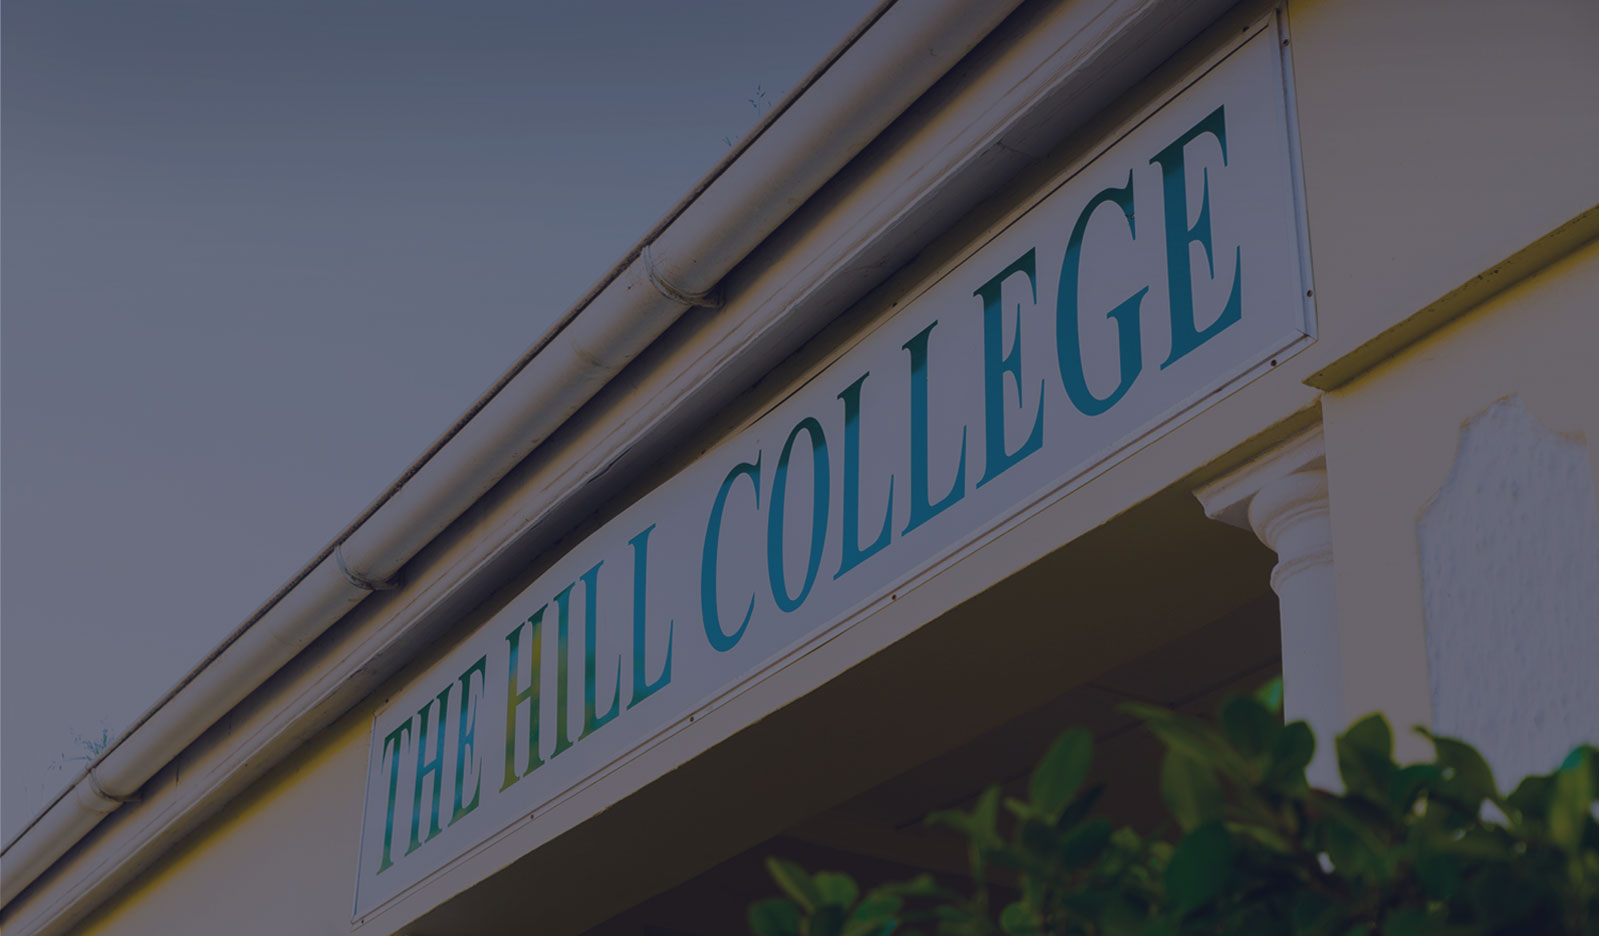 https://hillcollege.co.za/wp-content/uploads/main-header1.jpg